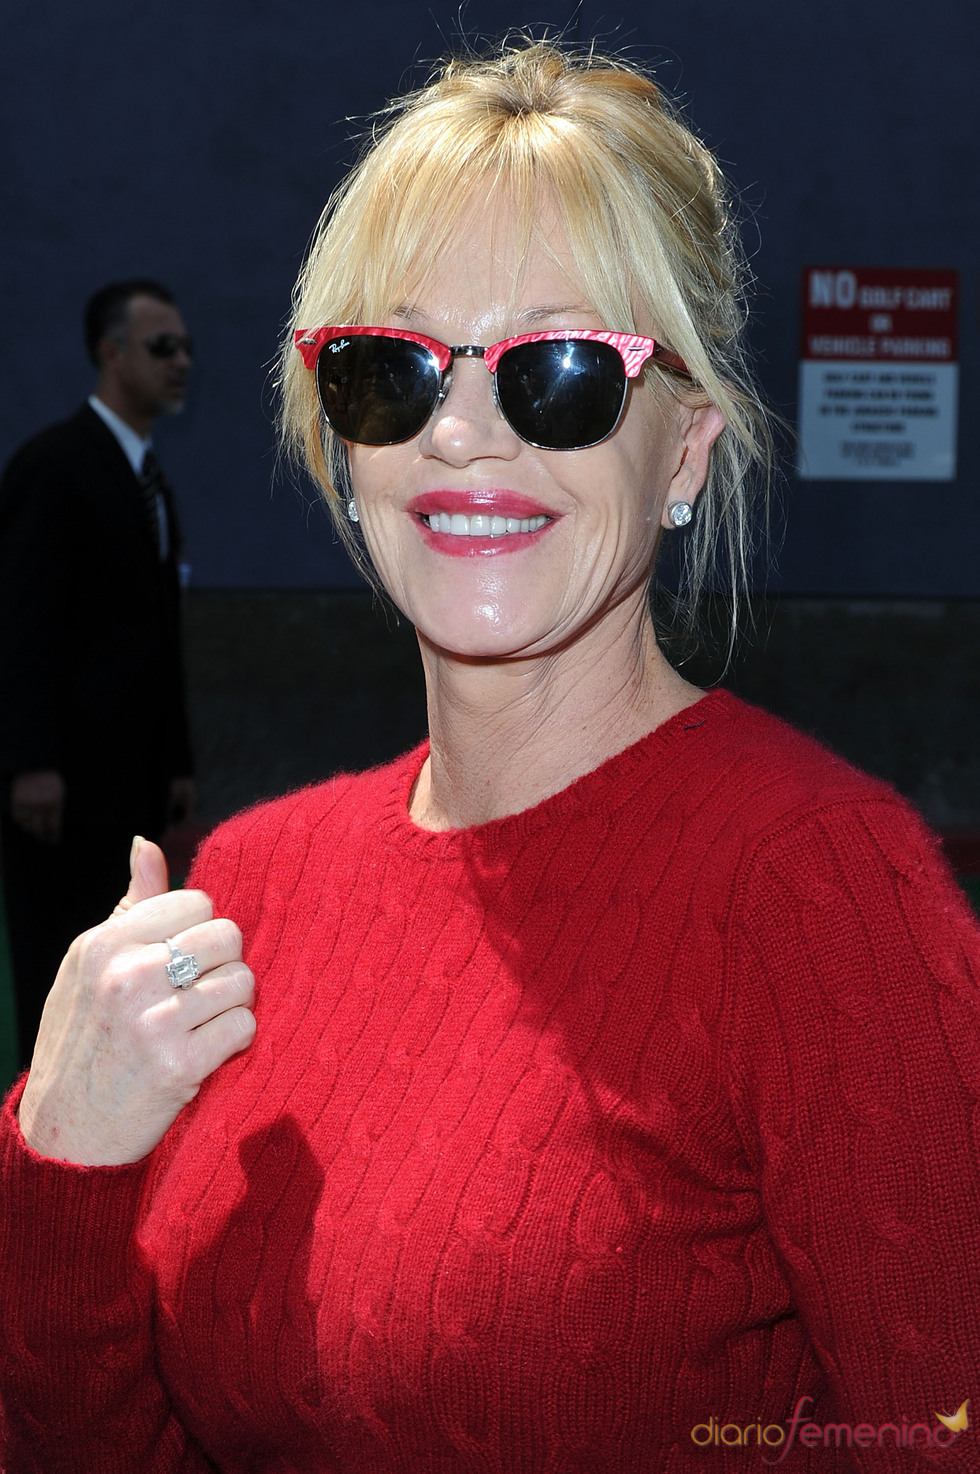 Melanie Griffith, a la moda en el estreno de 'Shrek Forever After'